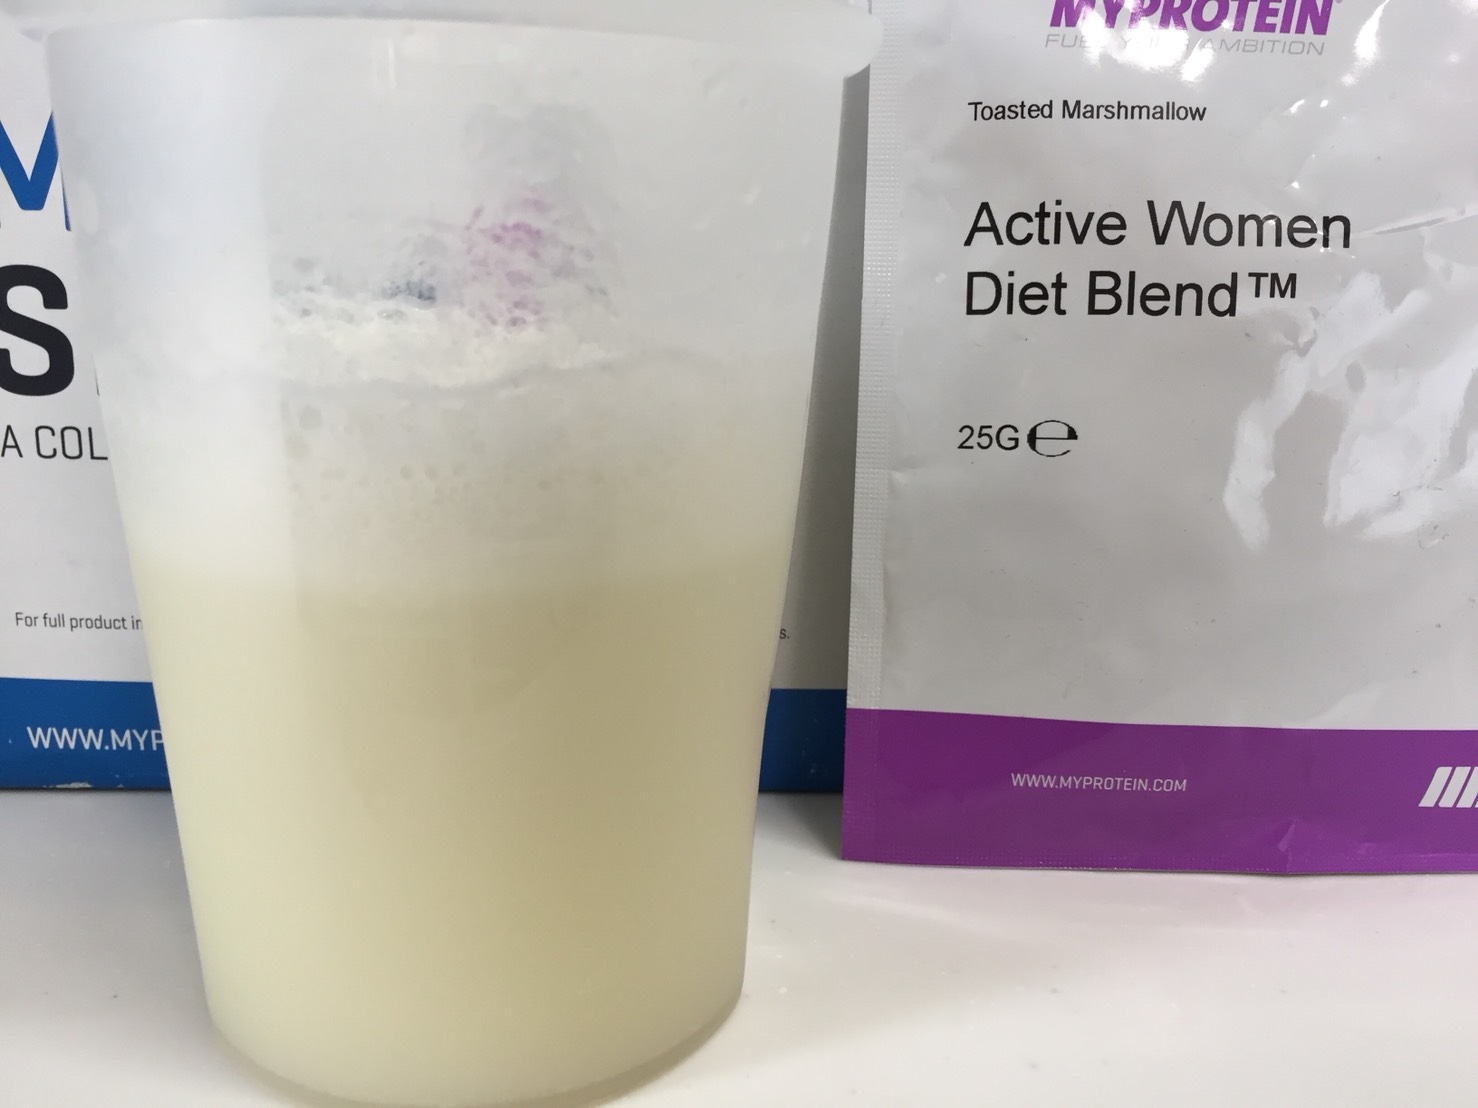 Active Women Diet Blend(アクティブウーマンダイエットブレンド)「Tosted Marshmallow(トーストマシュマロ味)」を横から撮影した様子